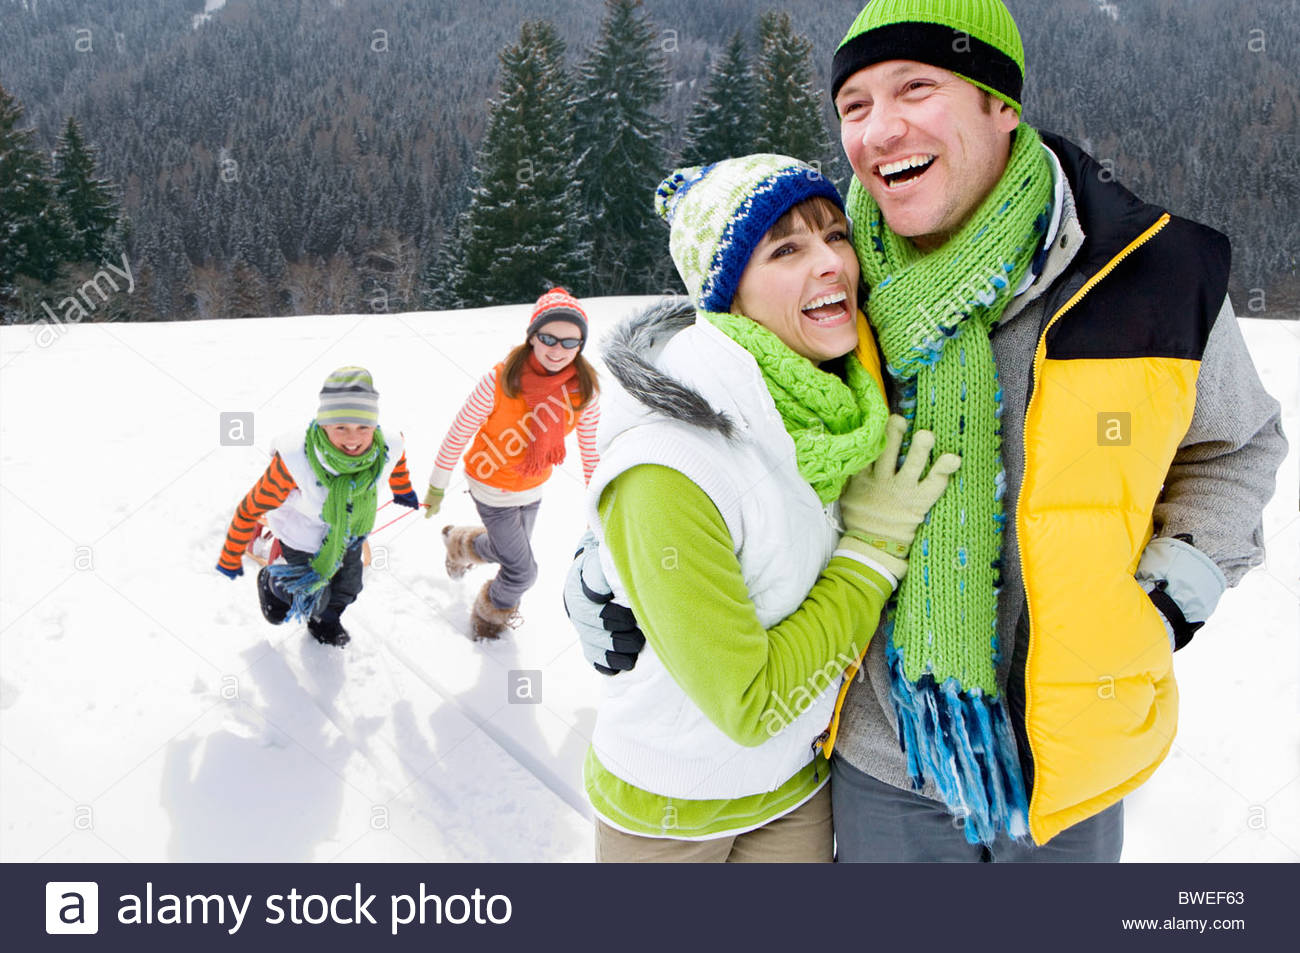 Smiling family walking in snowy woods together - Stock Image